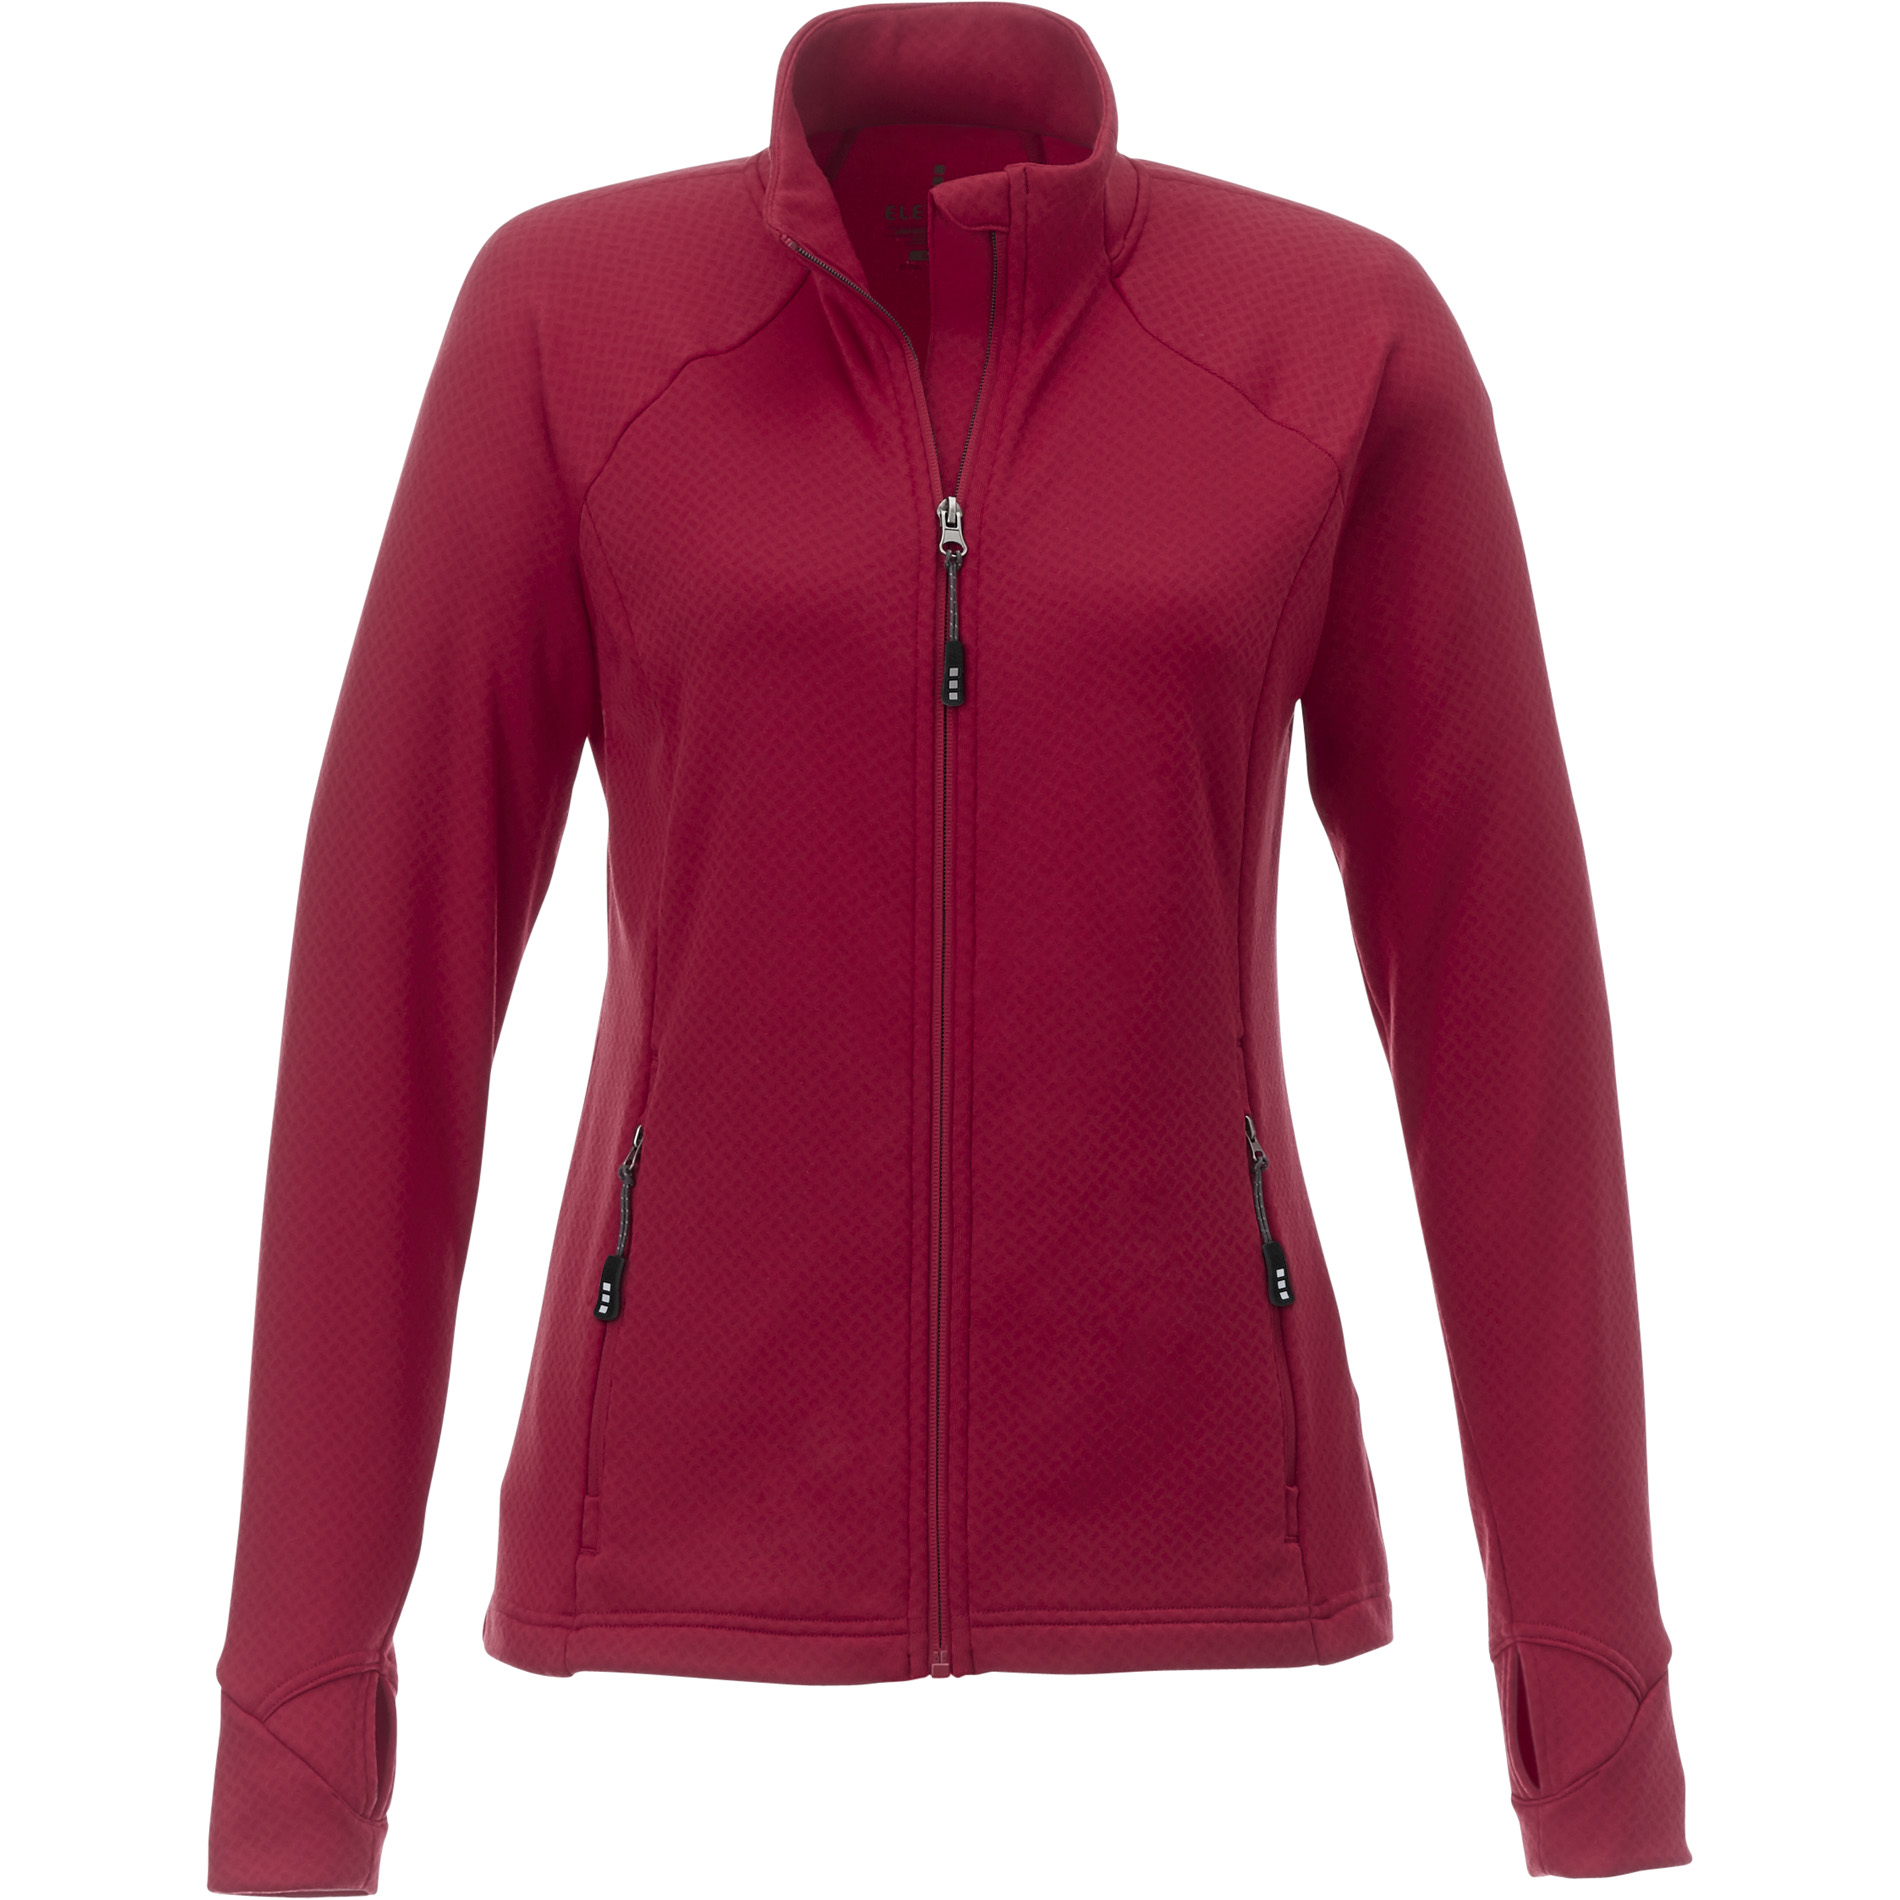 Elevate TM98136 - Women's KIRKWOOD Knit Jacket